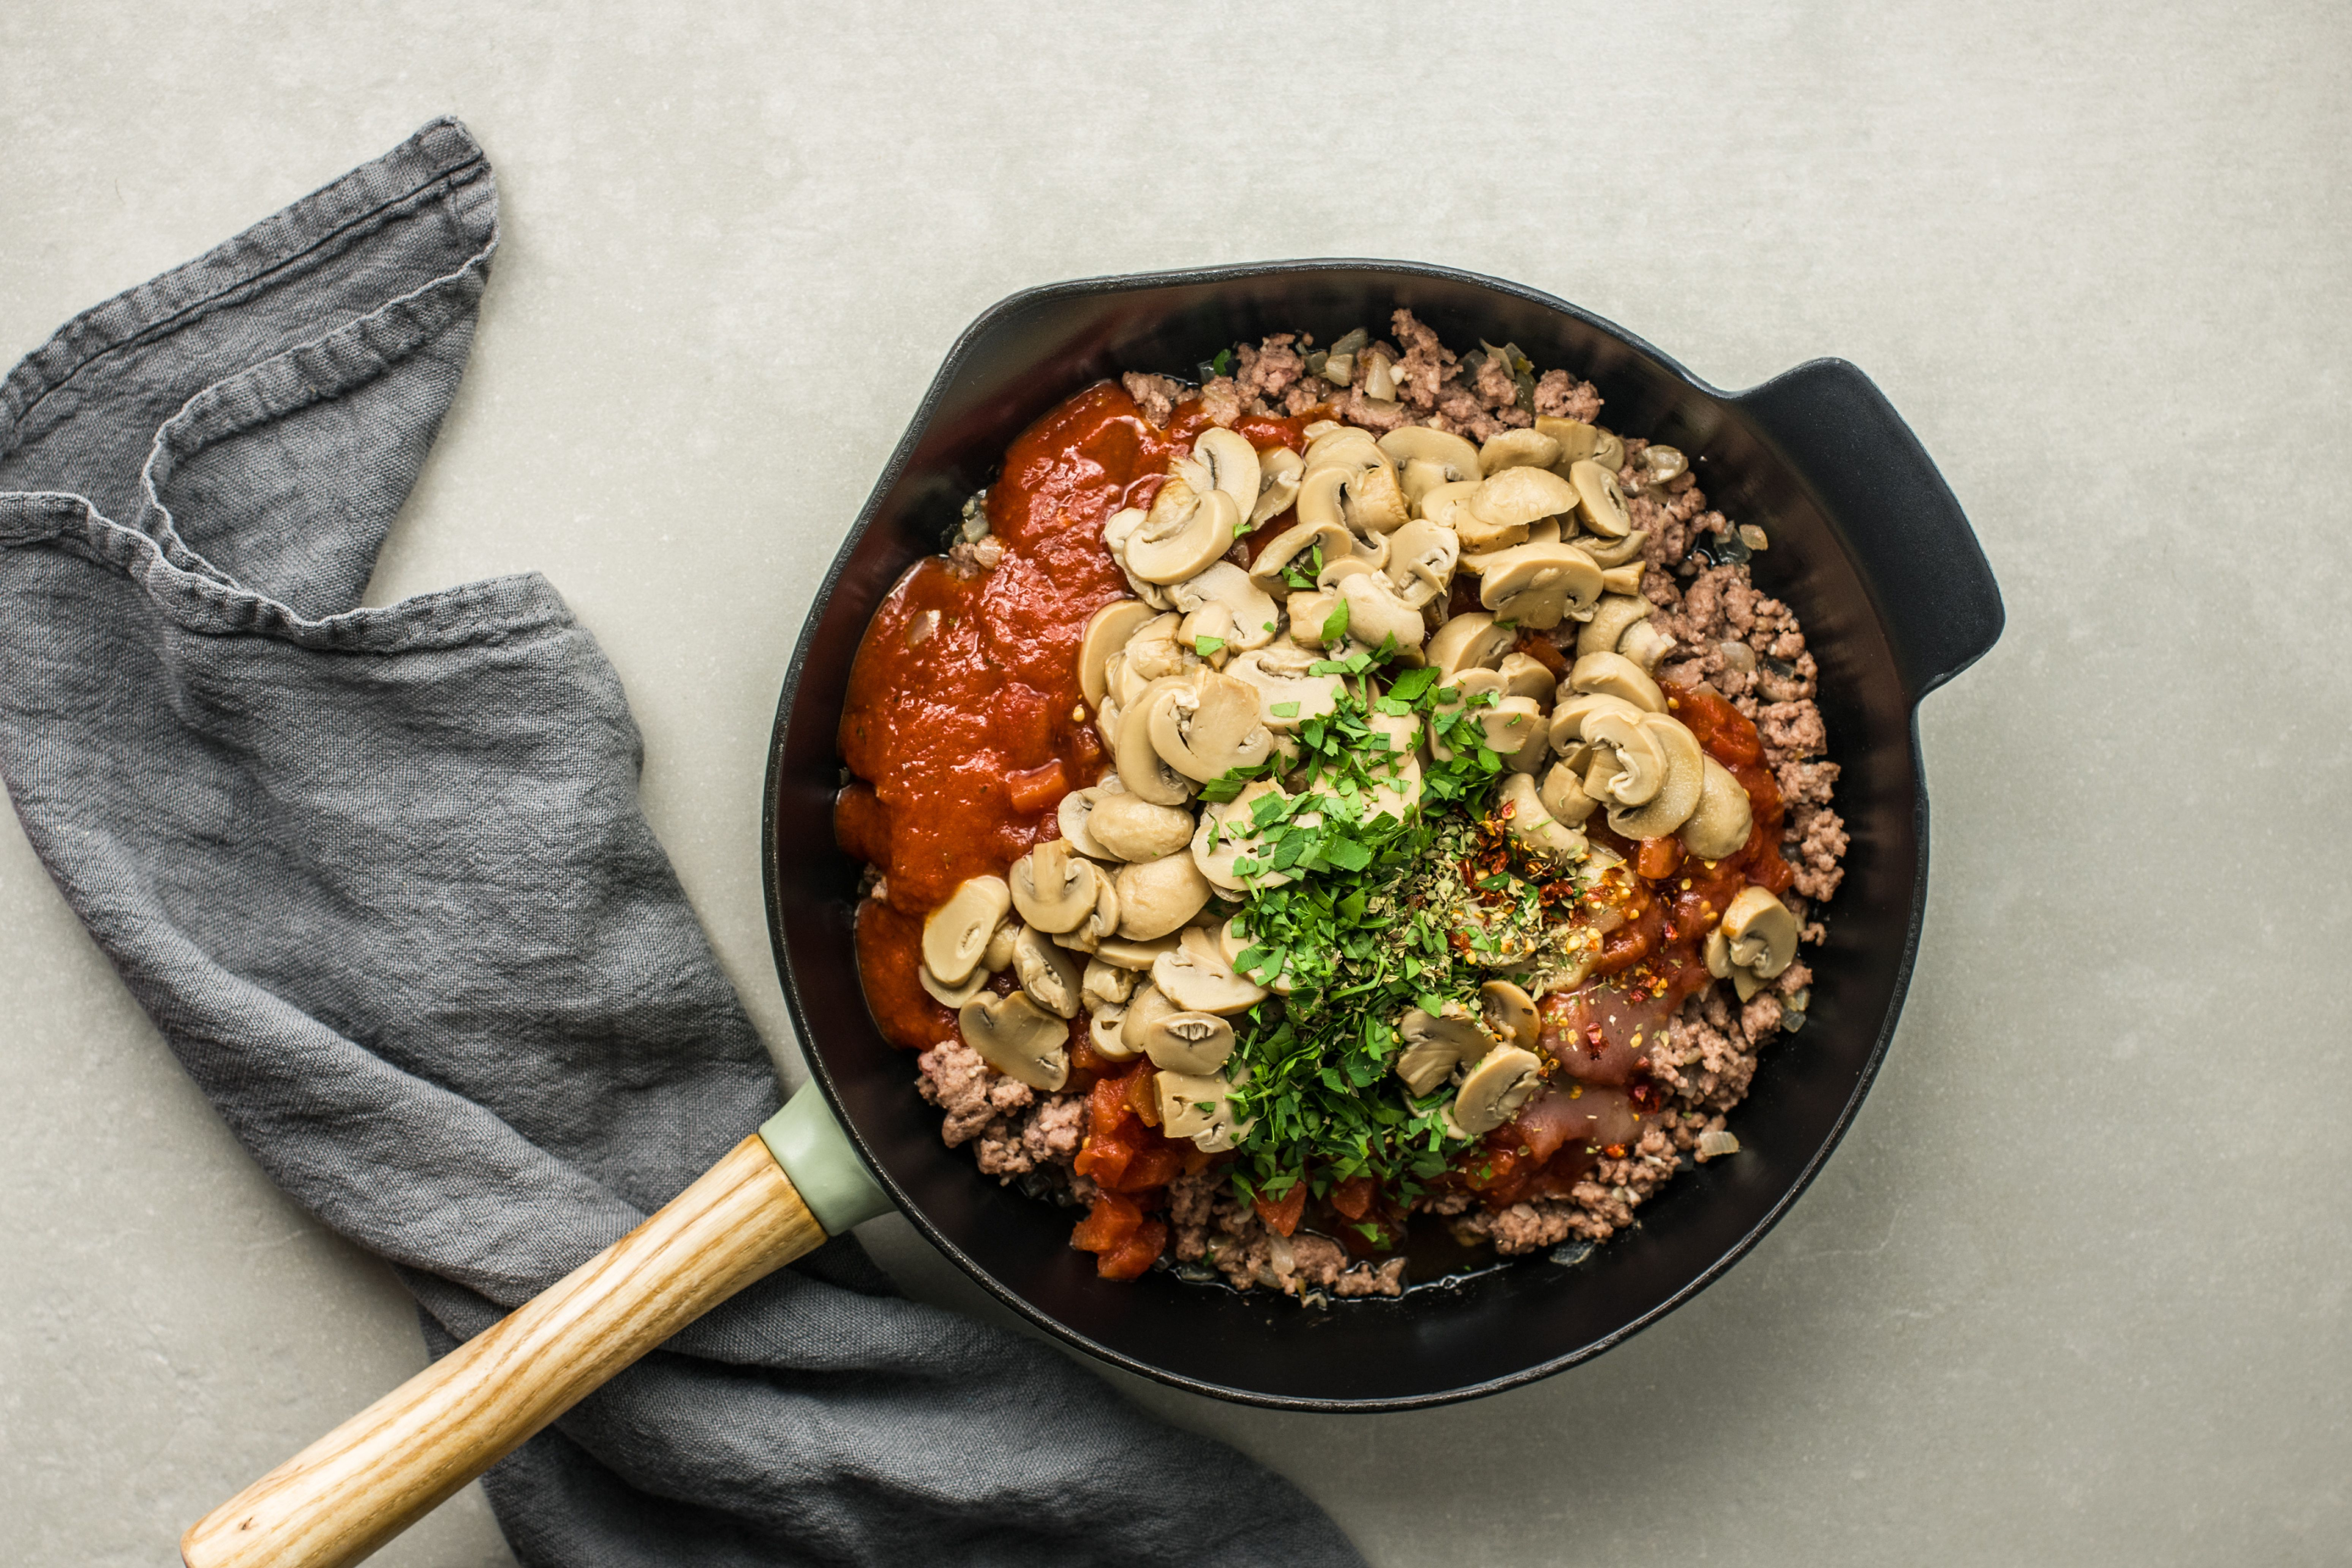 tomatoes, tomato sauce, parsley, and sugar and mushrooms added to skillet